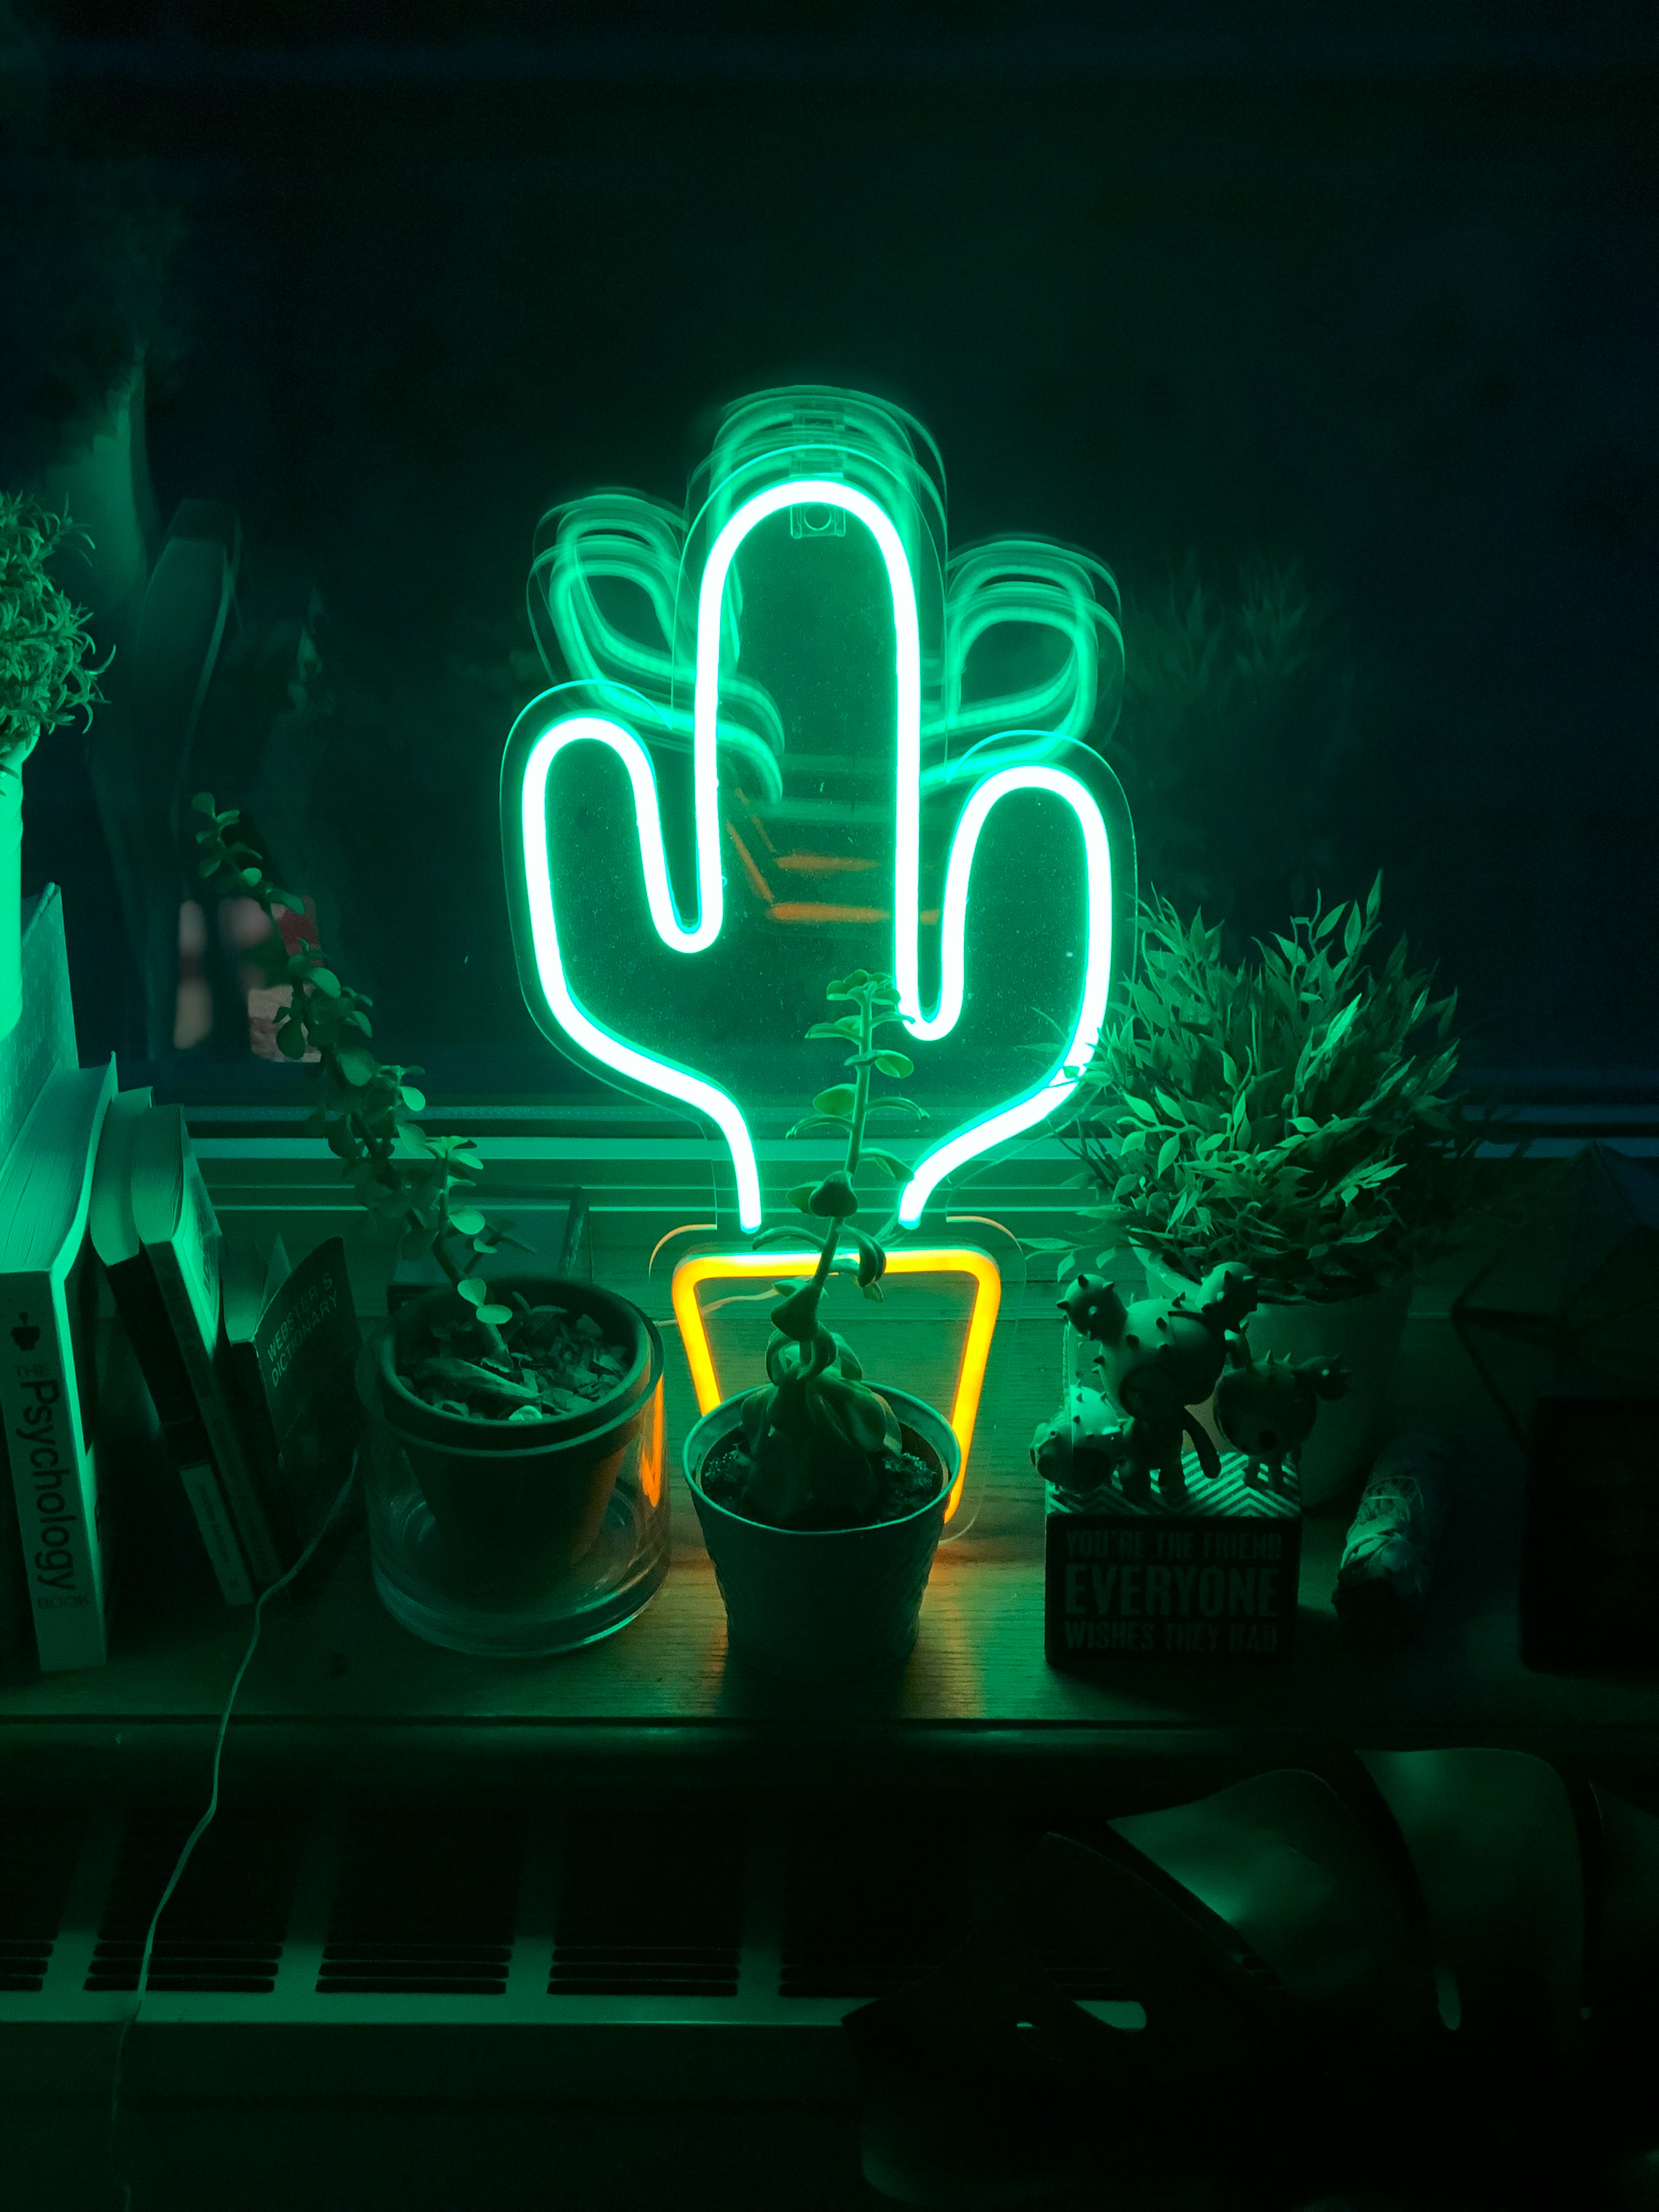 145928 free wallpaper 480x800 for phone, download images Flowers, Shine, Light, Miscellanea, Miscellaneous, Neon, Cactus 480x800 for mobile